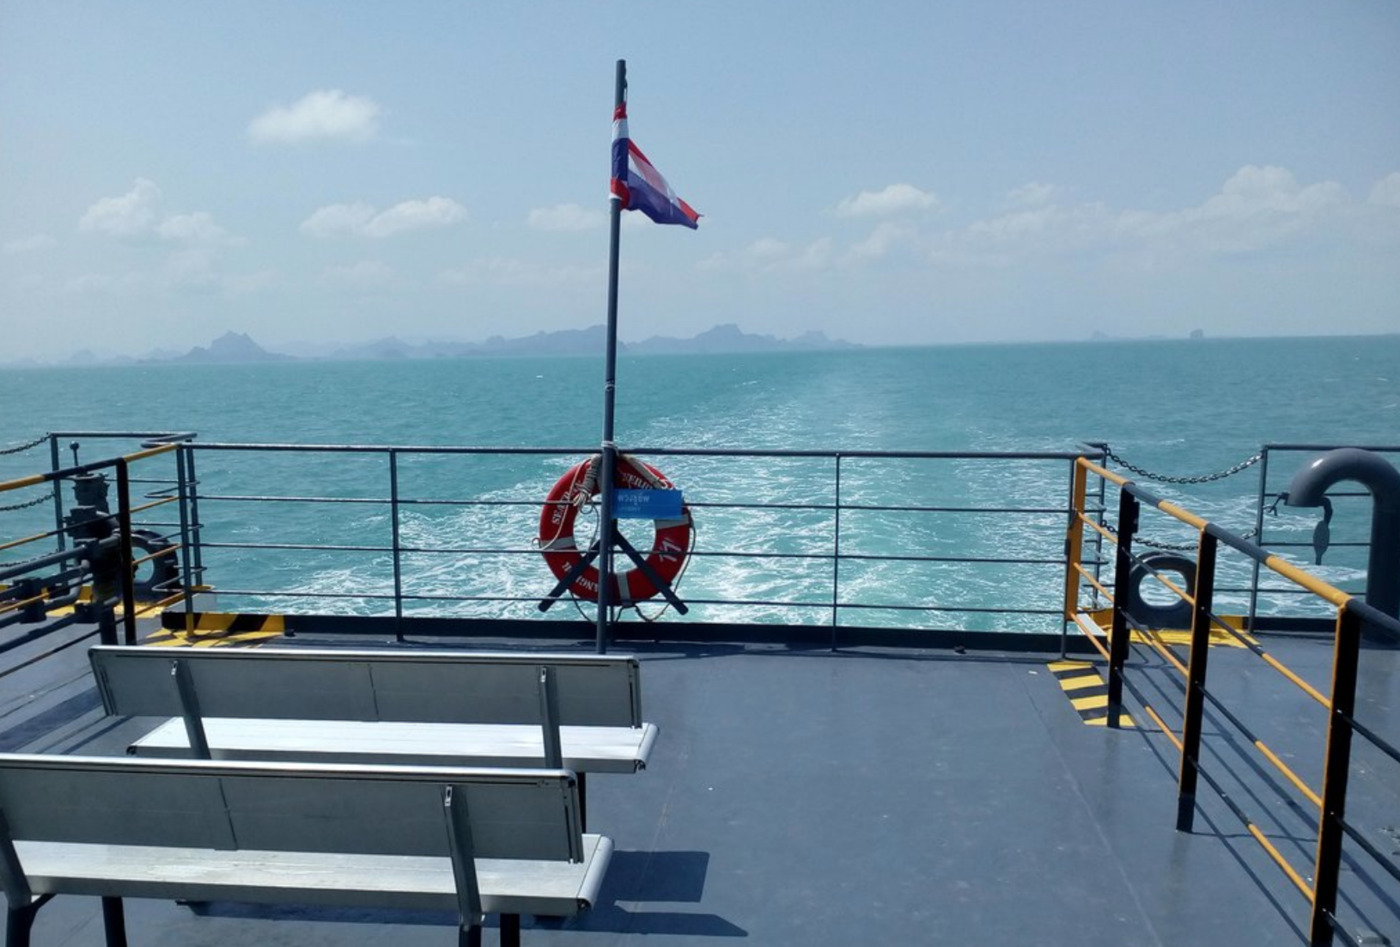 User submitted photo of Koh Samui